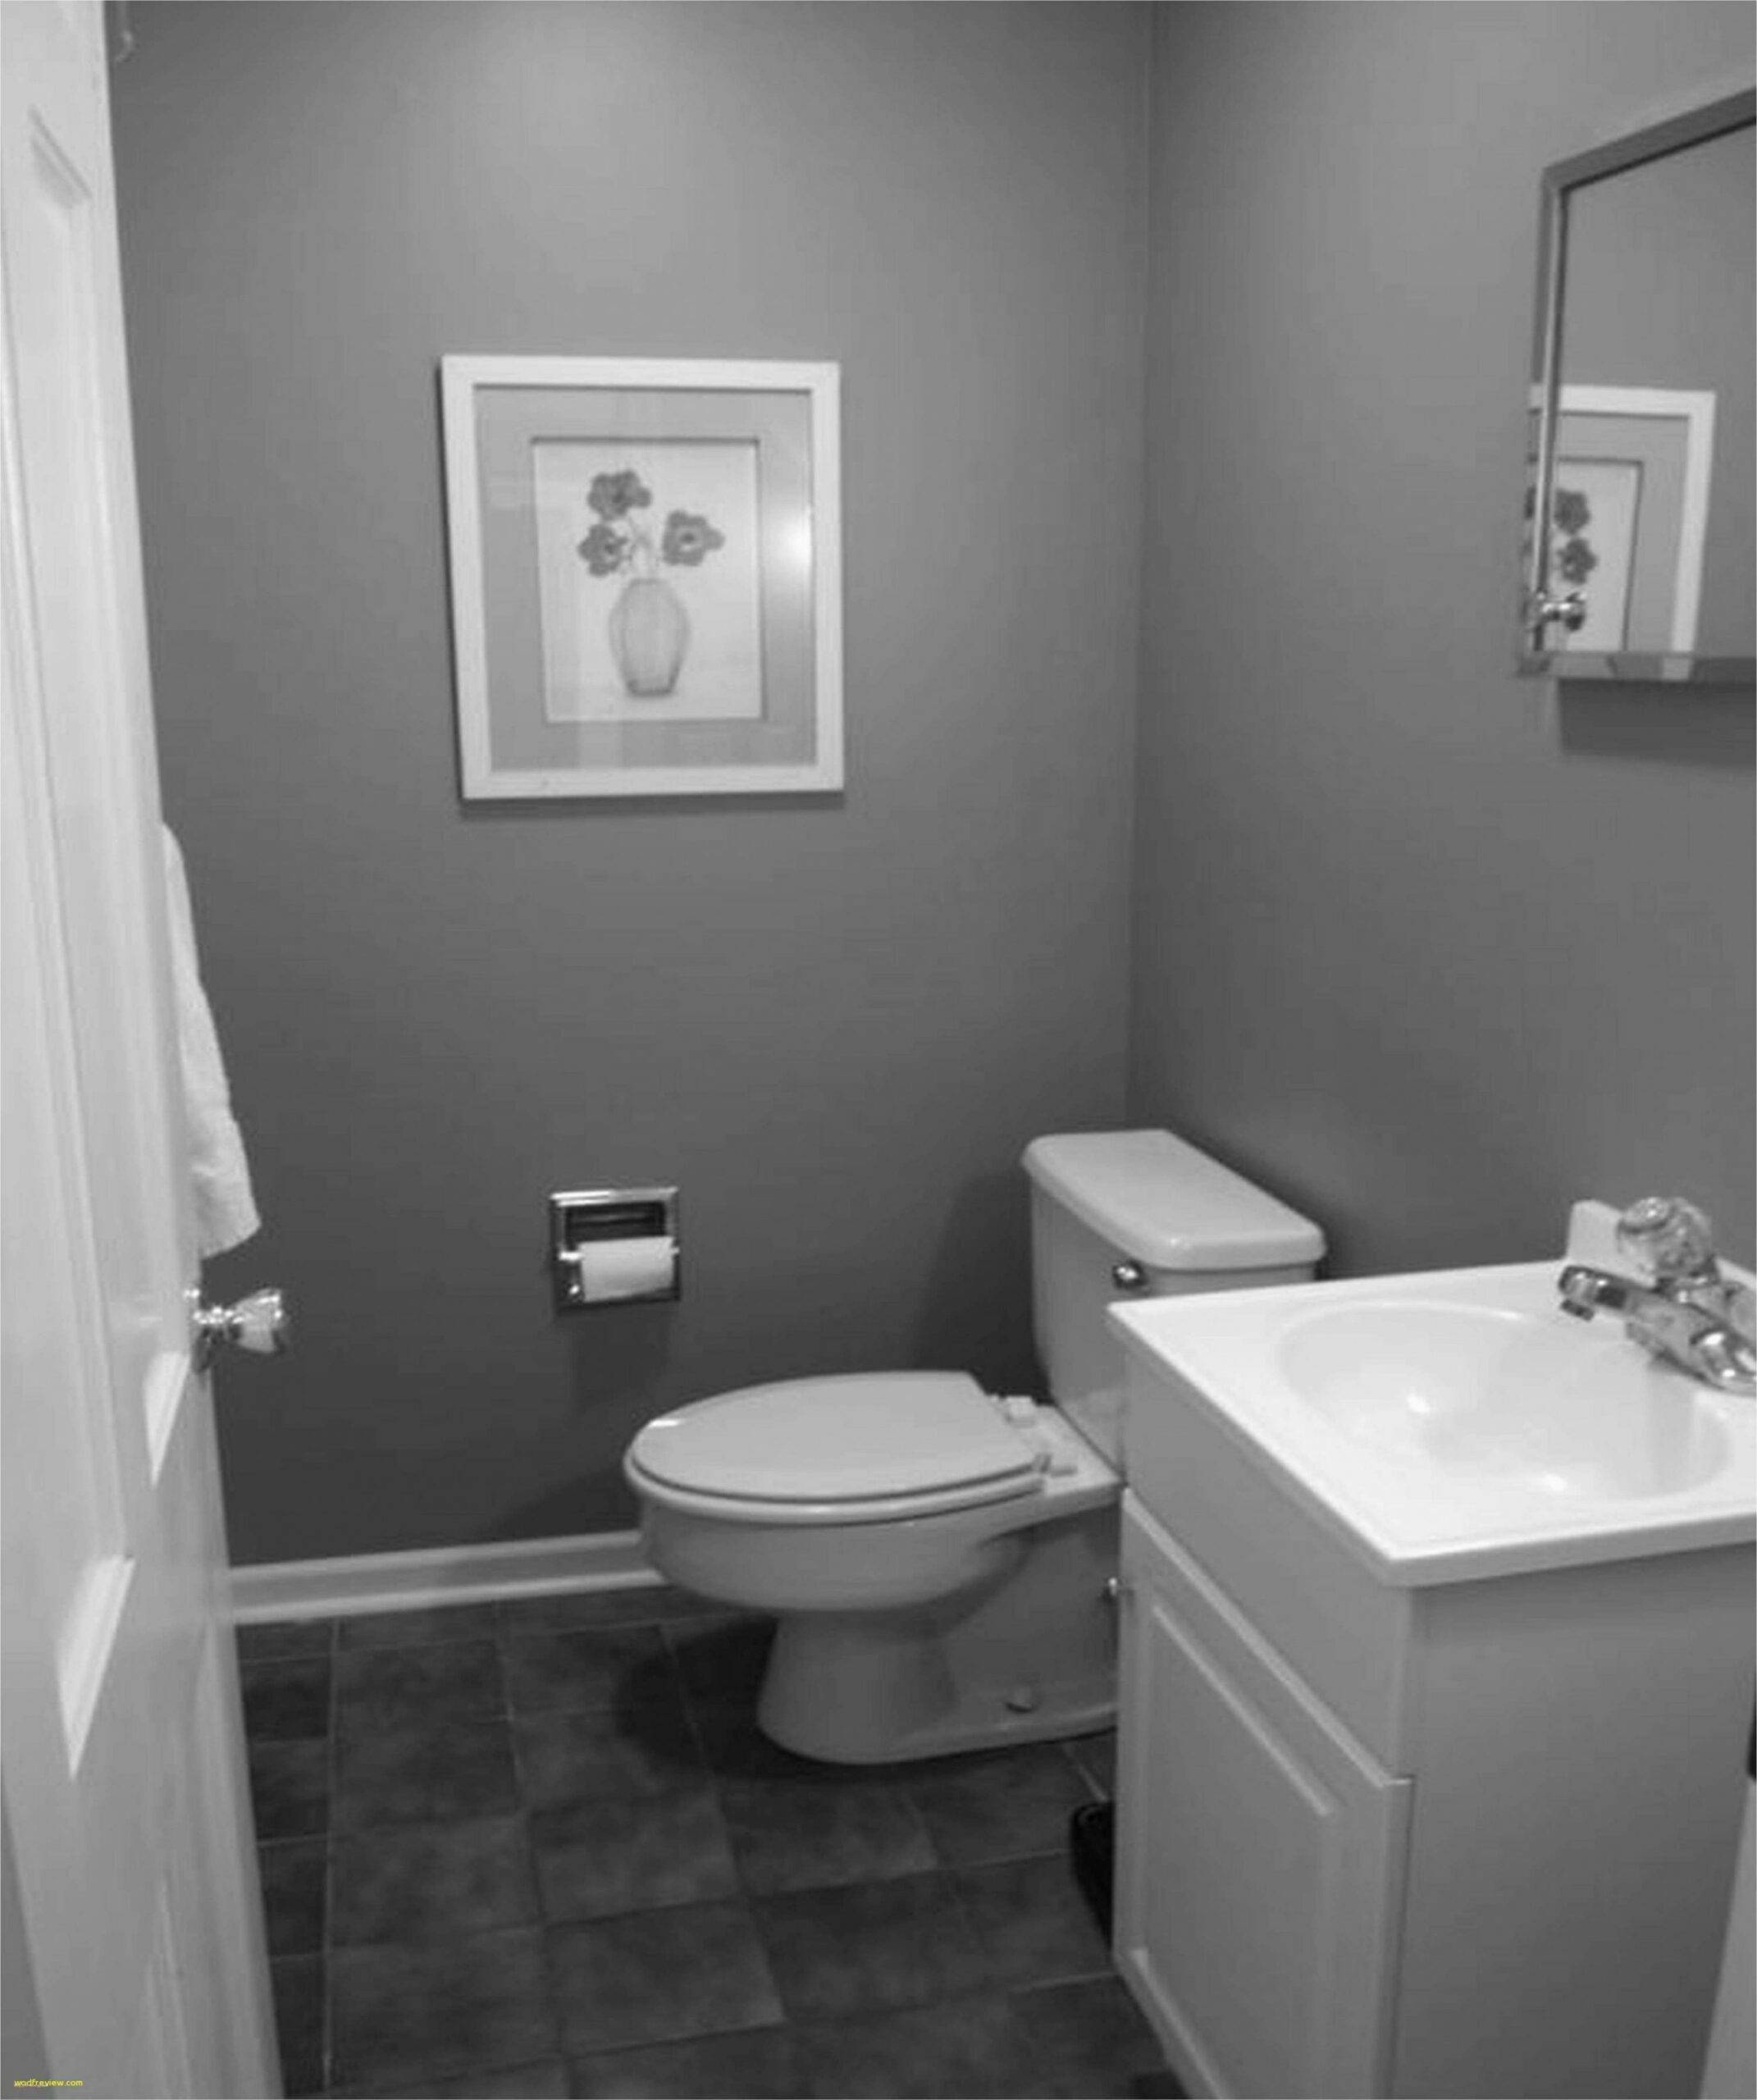 small bathroom ideas pictures new bathroom decorating ideas white walls of small bathroom ideas pictures scaled